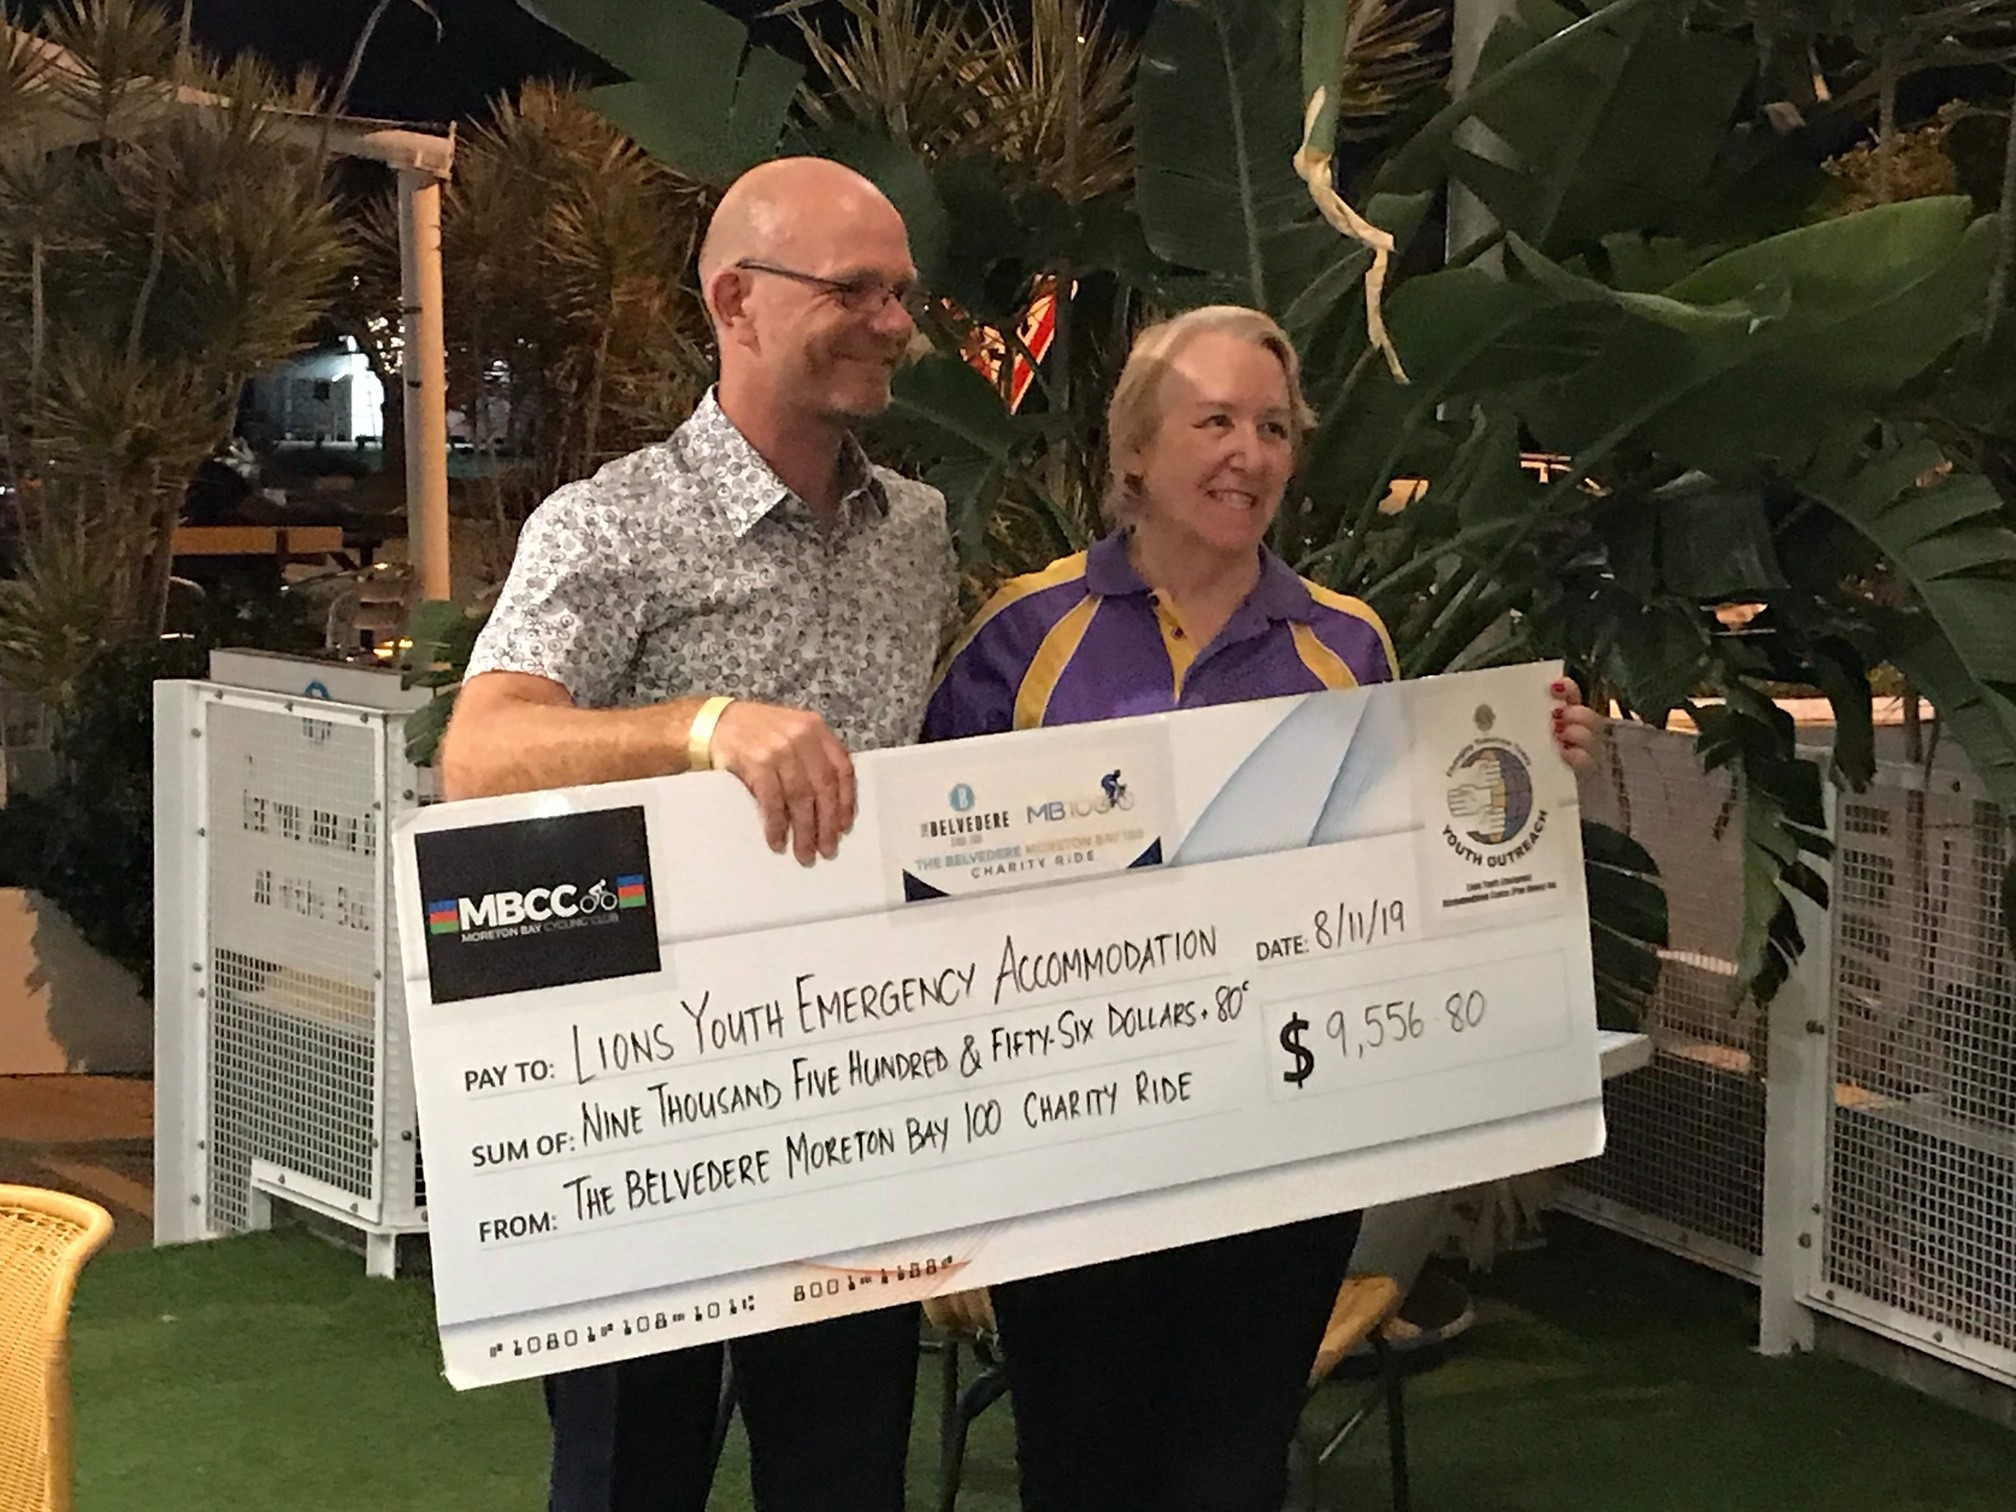 Cheque to LYEAC